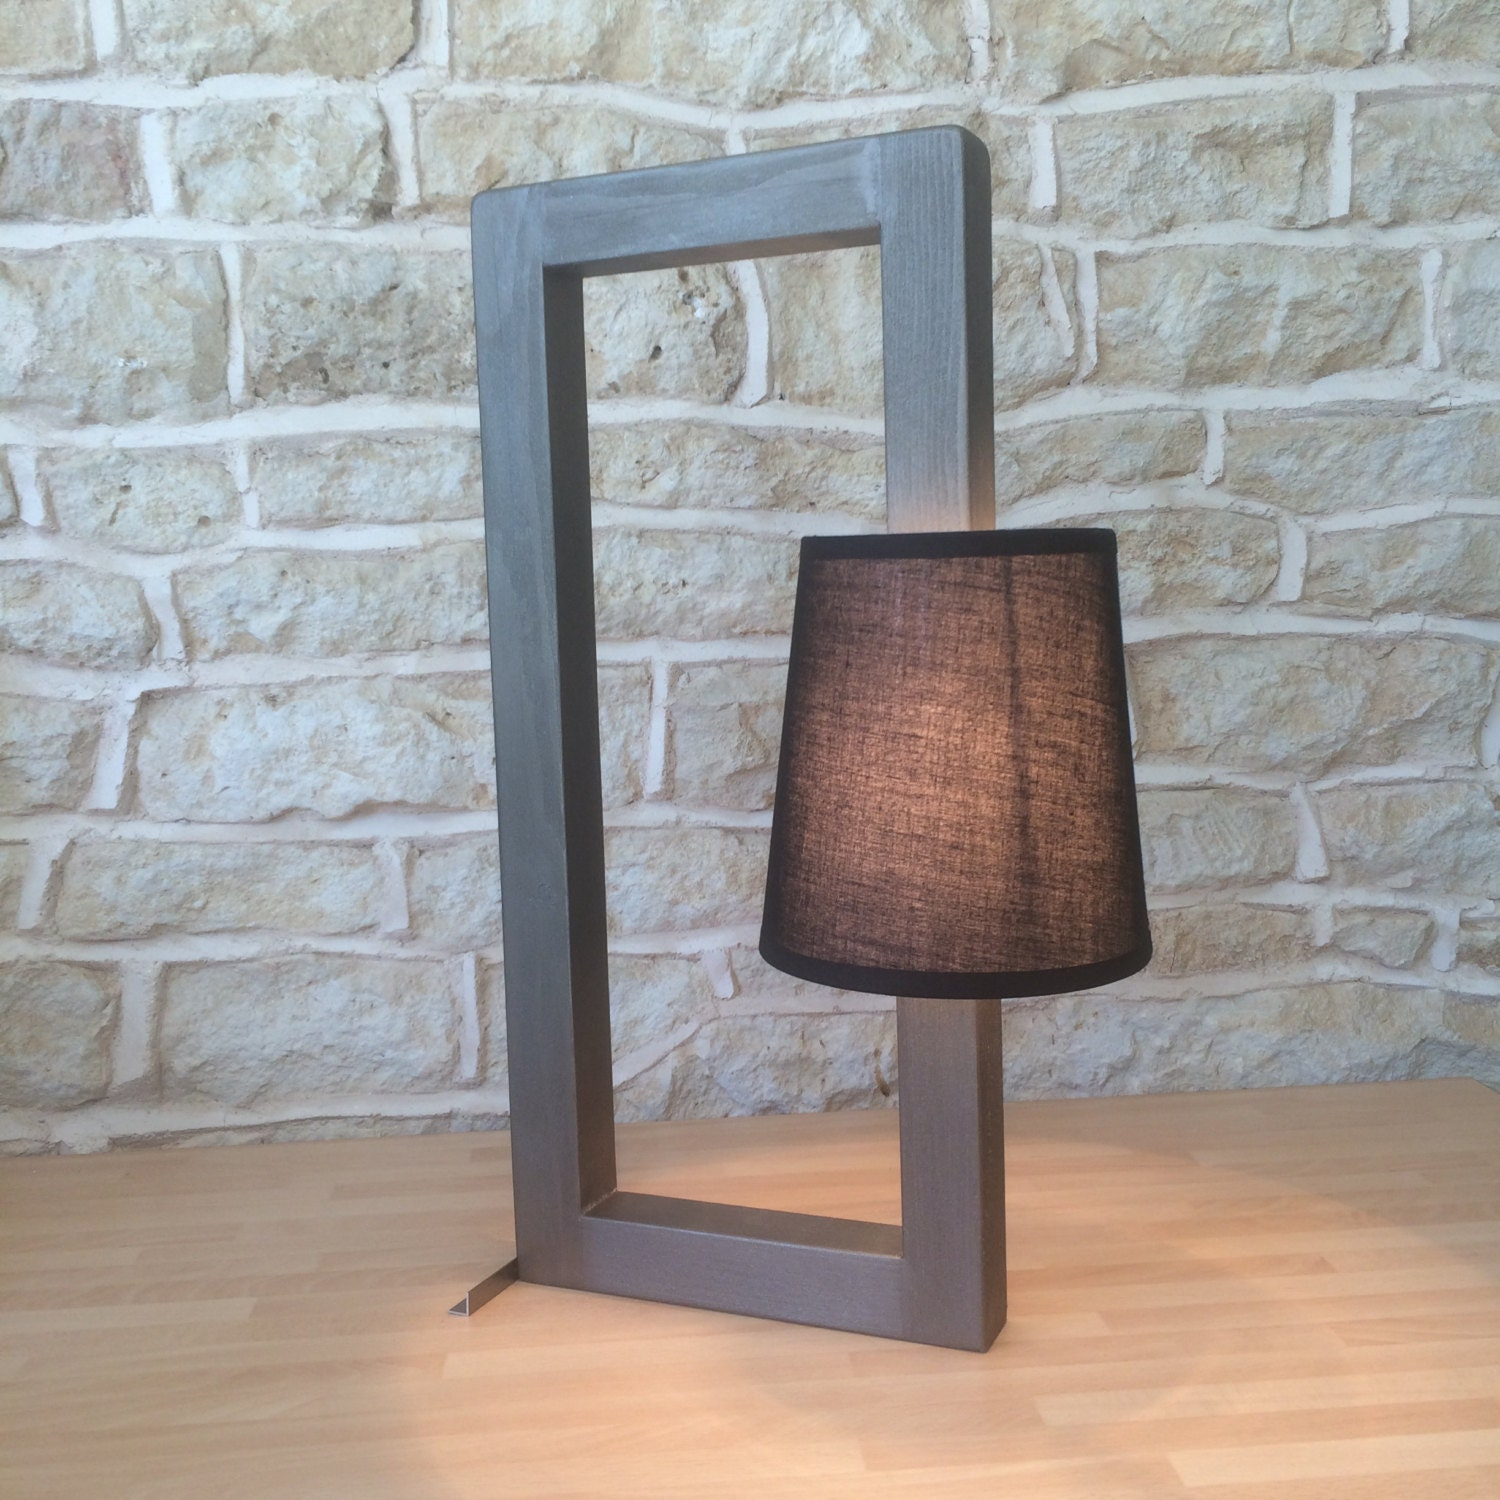 contemporary desk lamps office. Modern Table Lamp, Desk Contemporary Home Office Stylish Gift, Decor Lamps